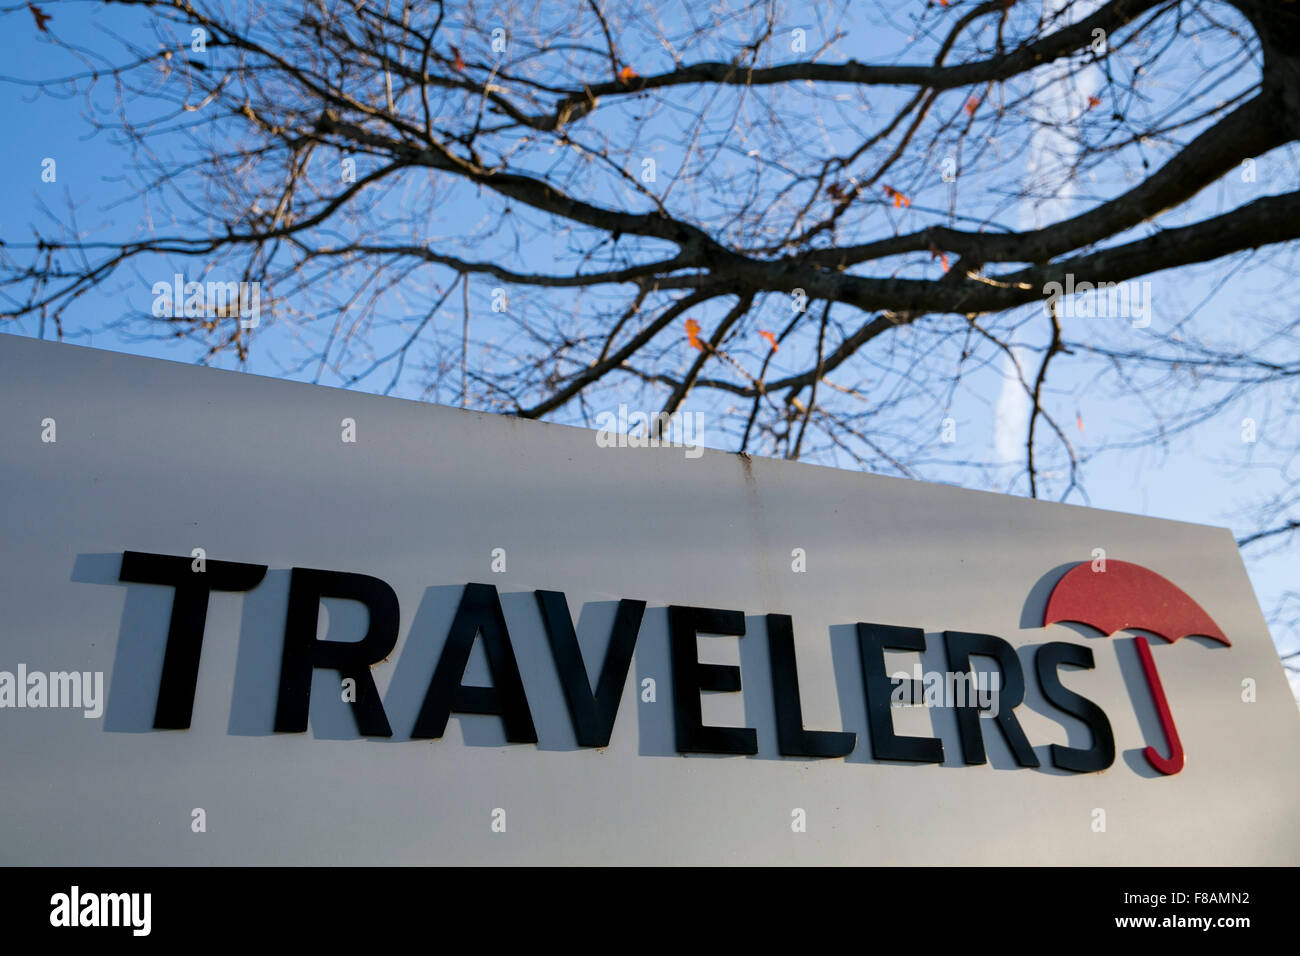 A logo sign outside of a facility occupied by The Travelers Companies in Windsor, Connecticut on November 21, 2015. - Stock Image